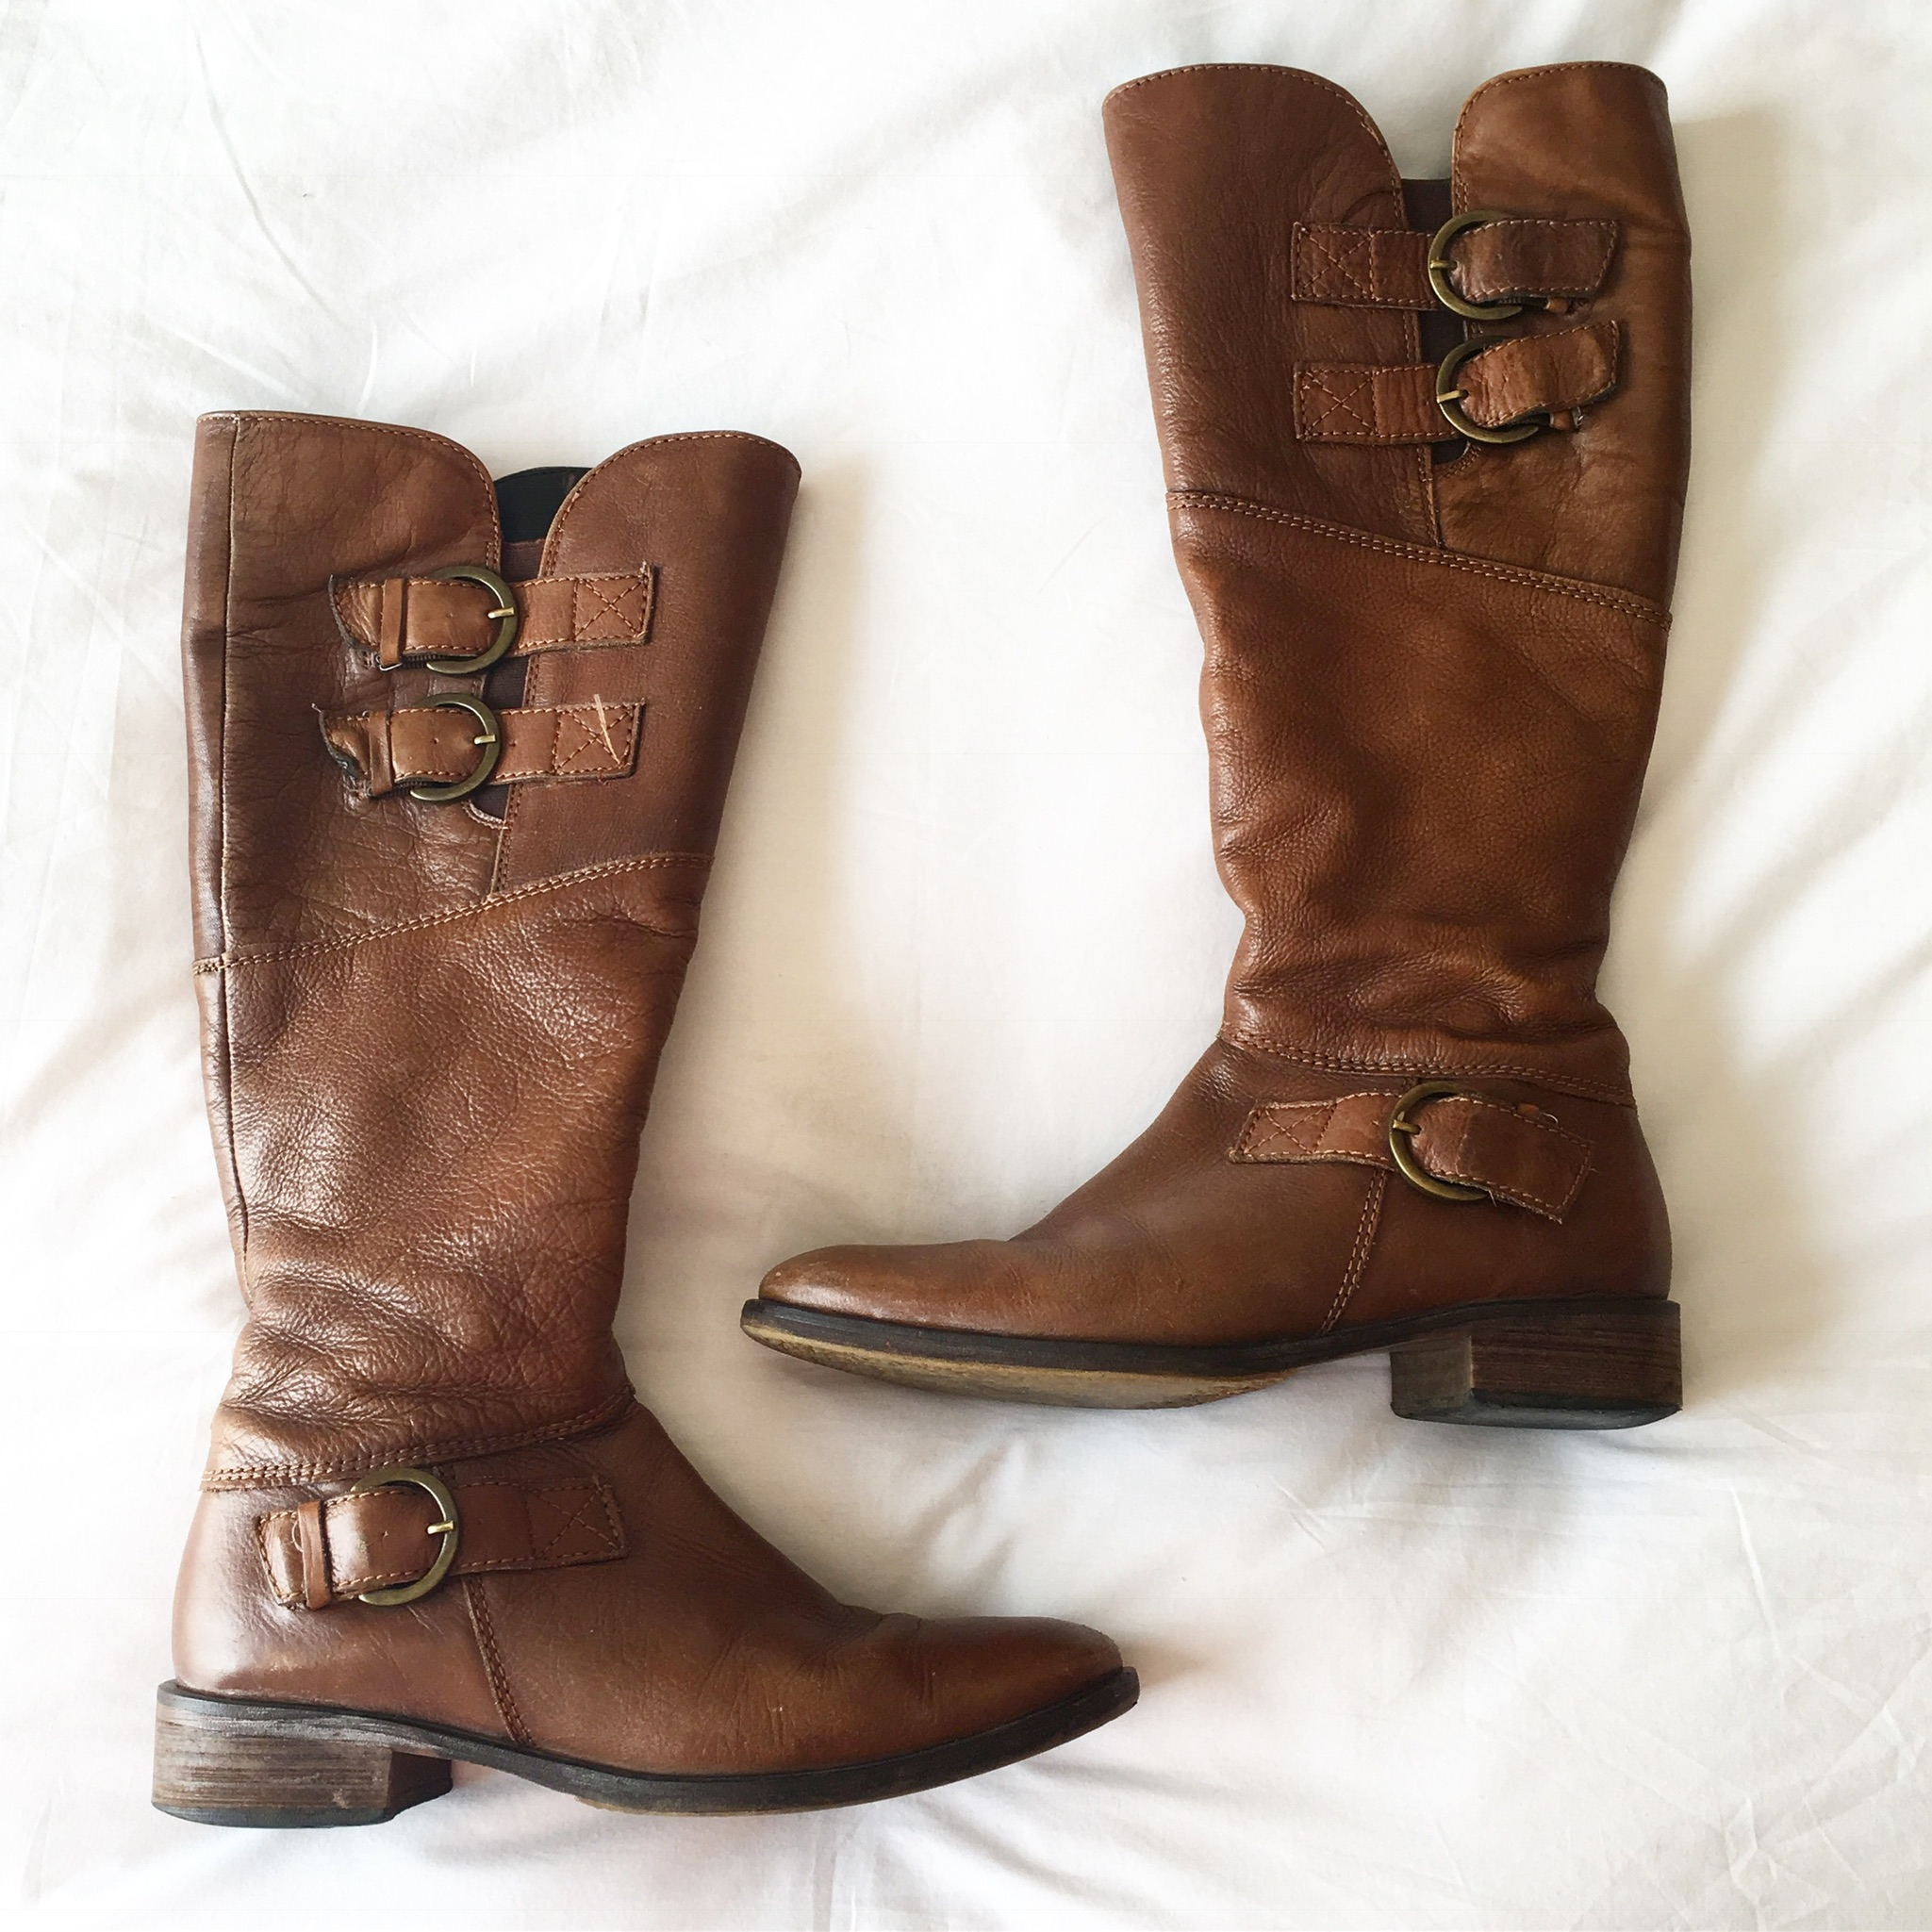 Winter Wardrobe: Boots, Boots and more